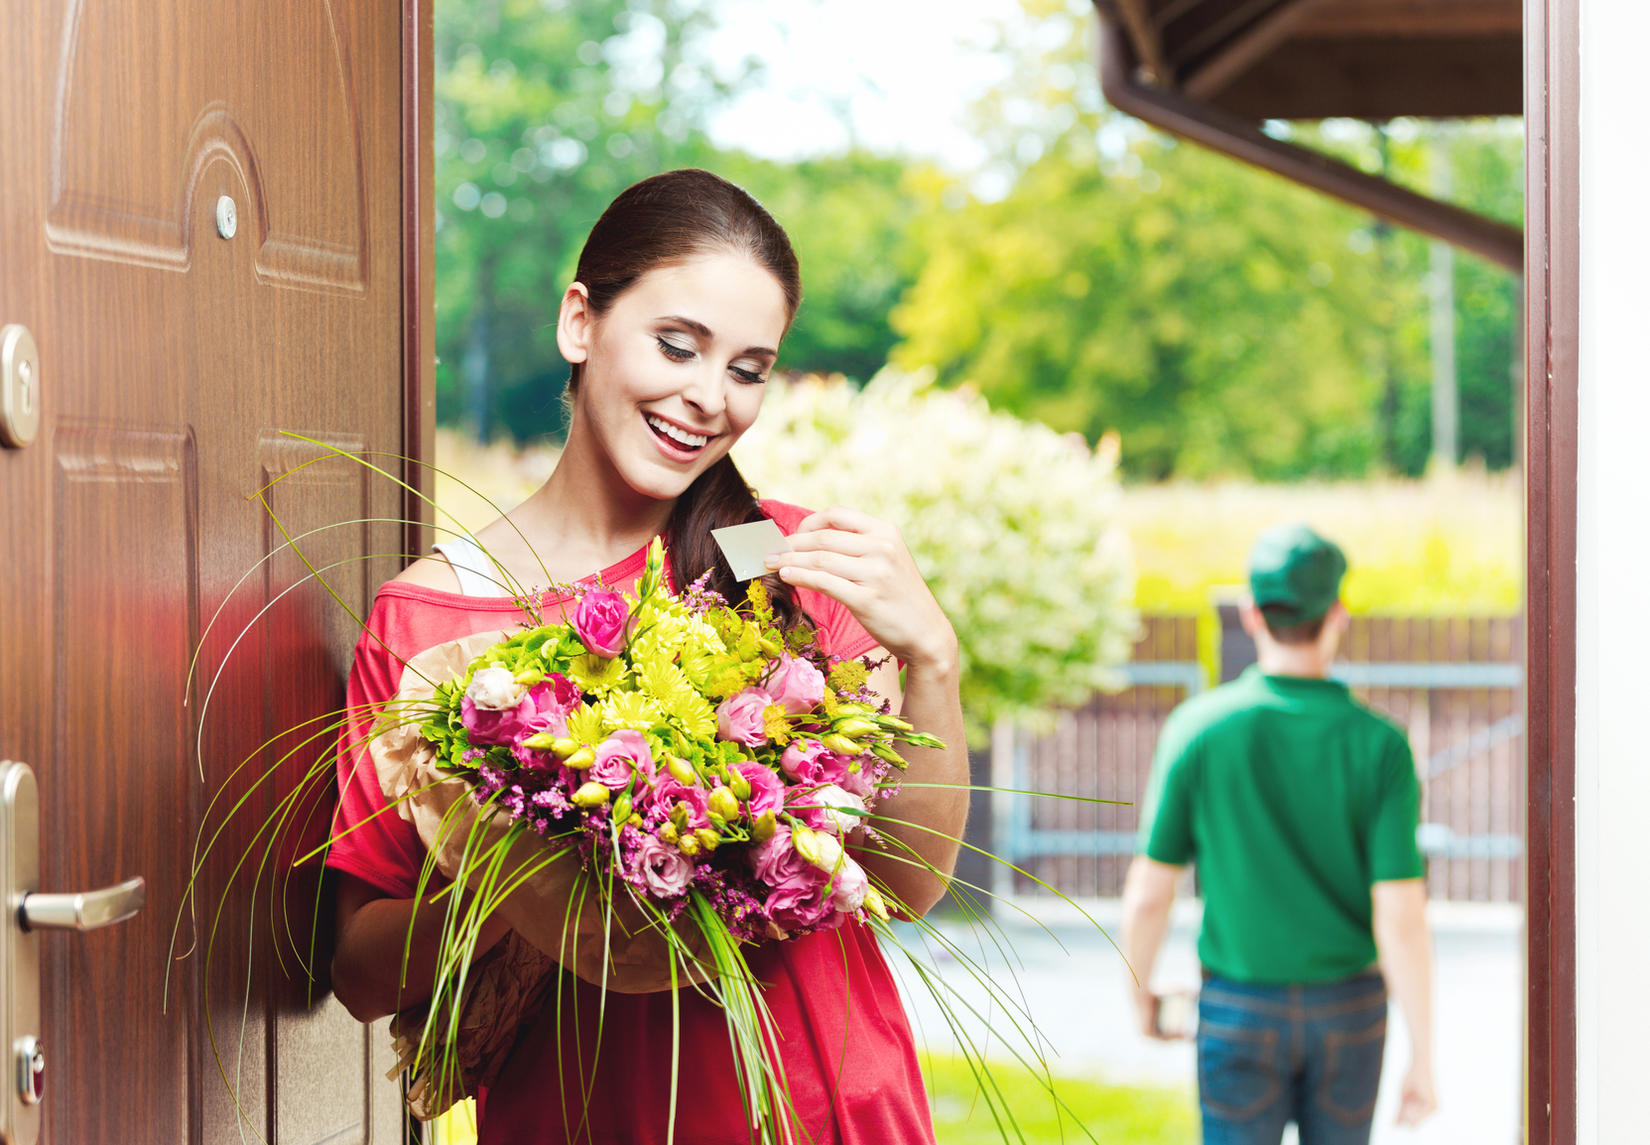 Florists coupons deals near colorado springs co localsaver florists coupons deals near colorado springs co mightylinksfo